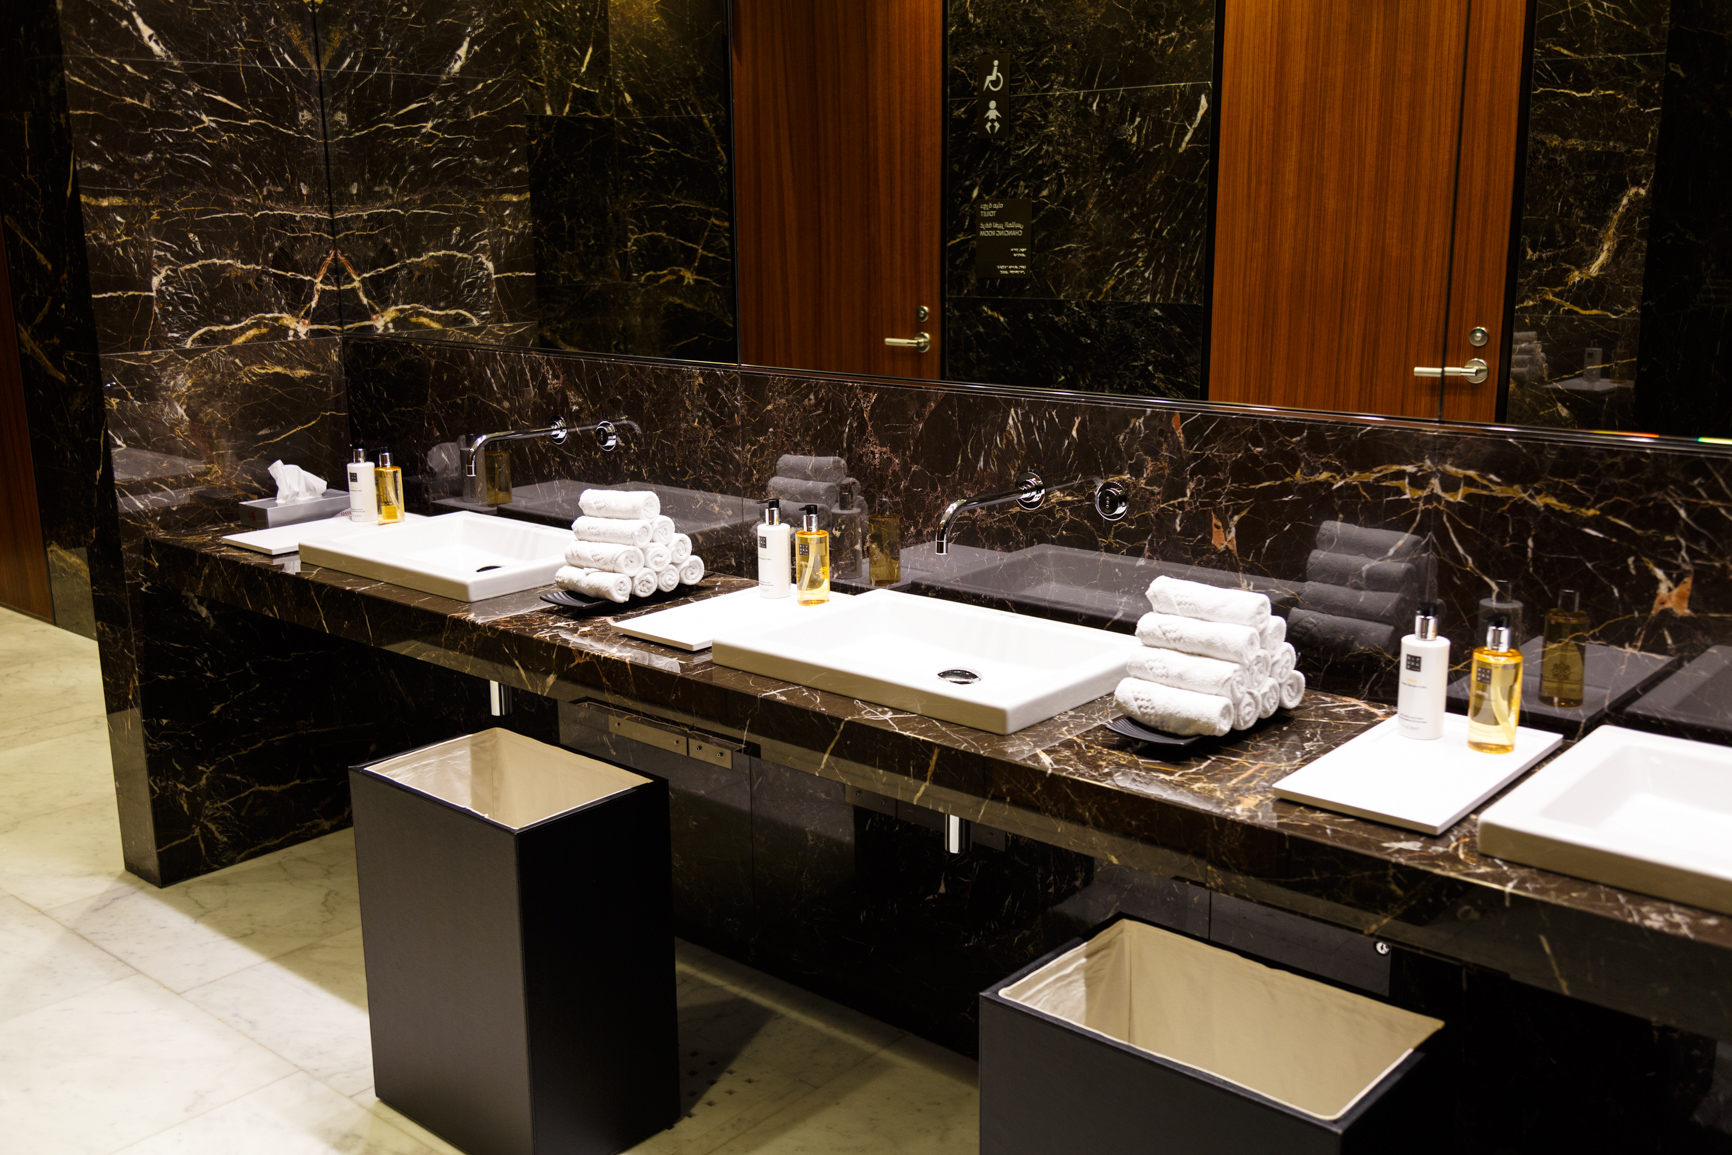 Qatar Airways Al Safwa First Class Lounge Doha Review - Focused Flyer